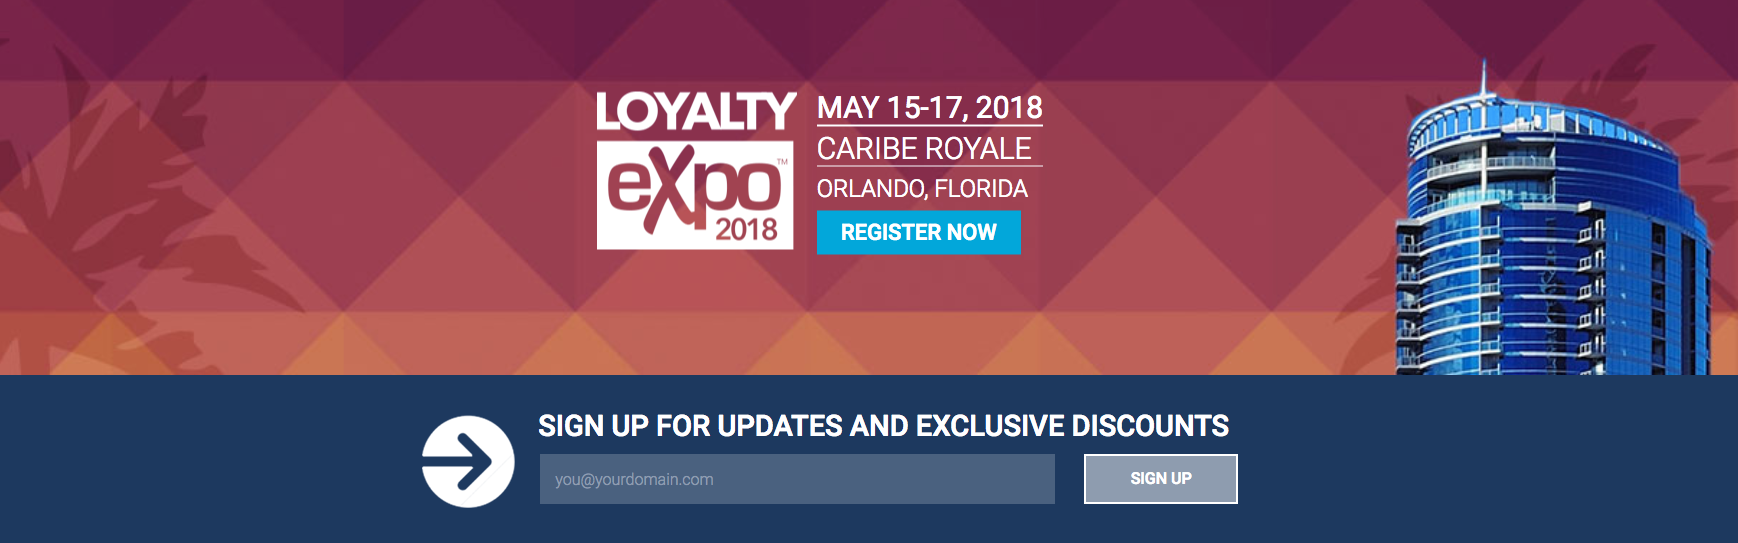 Loyalty Expo 2018 Marketing Conferences